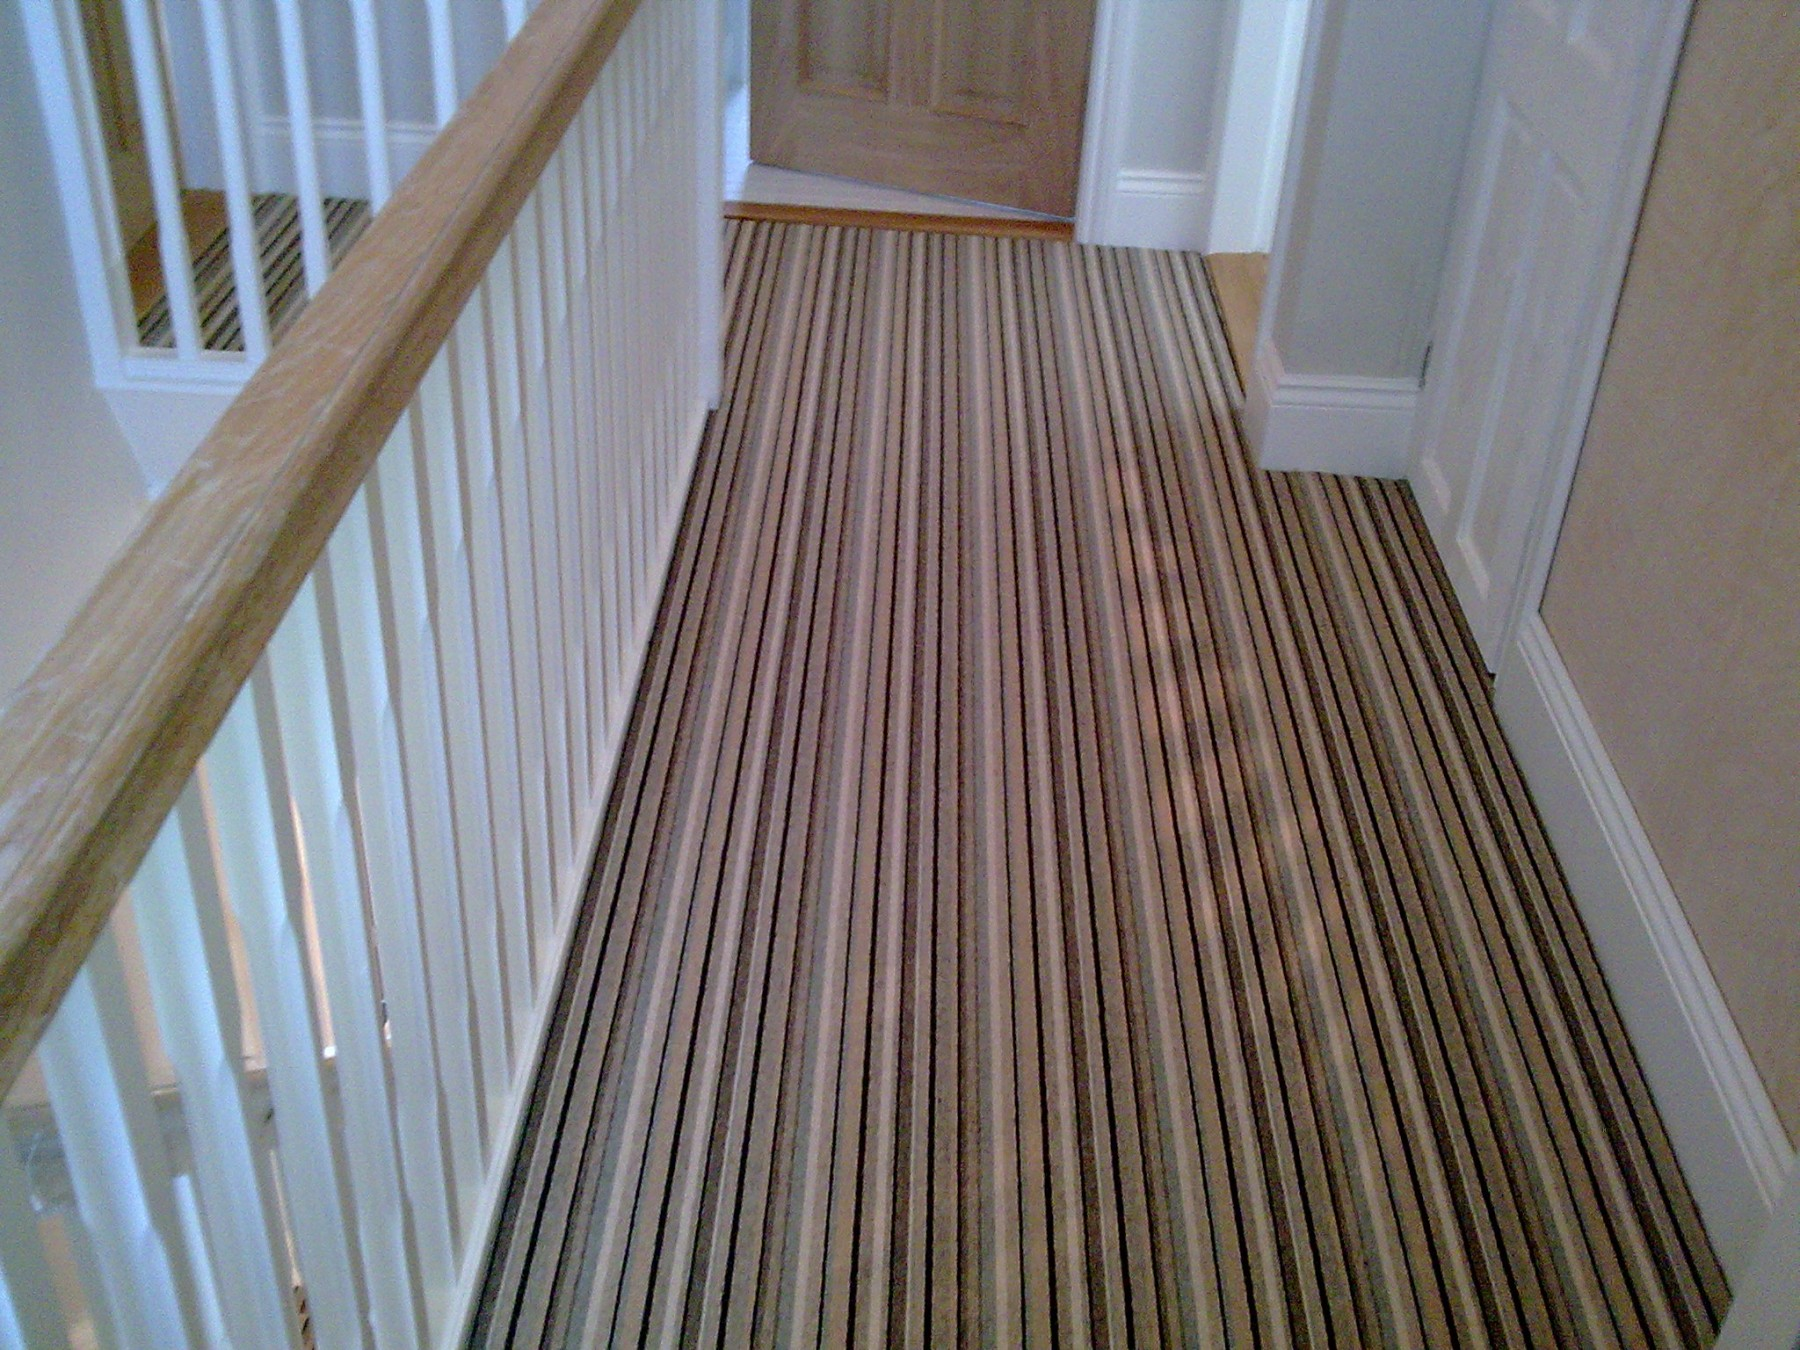 Striped carpet on a small landing with beige walls